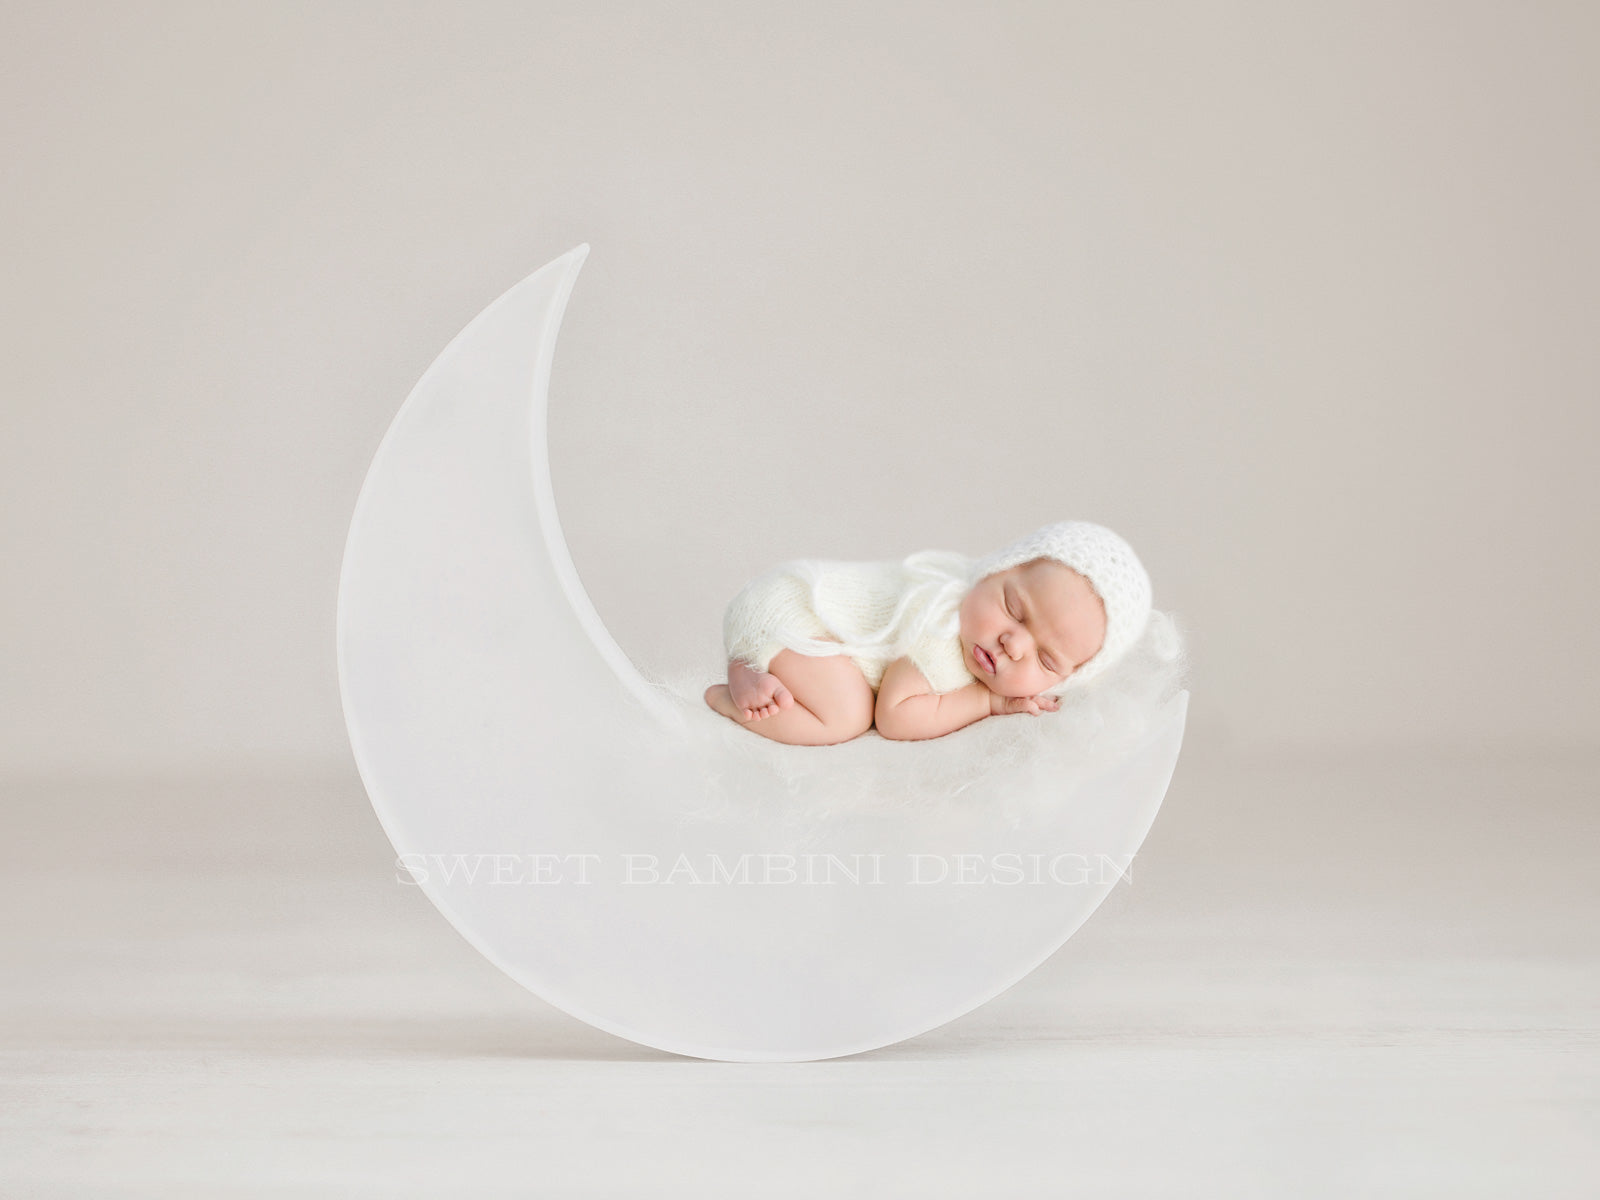 Newborn Photography Digital Backdrop For Girls Or Boys Simple White Sweet Bambini Design